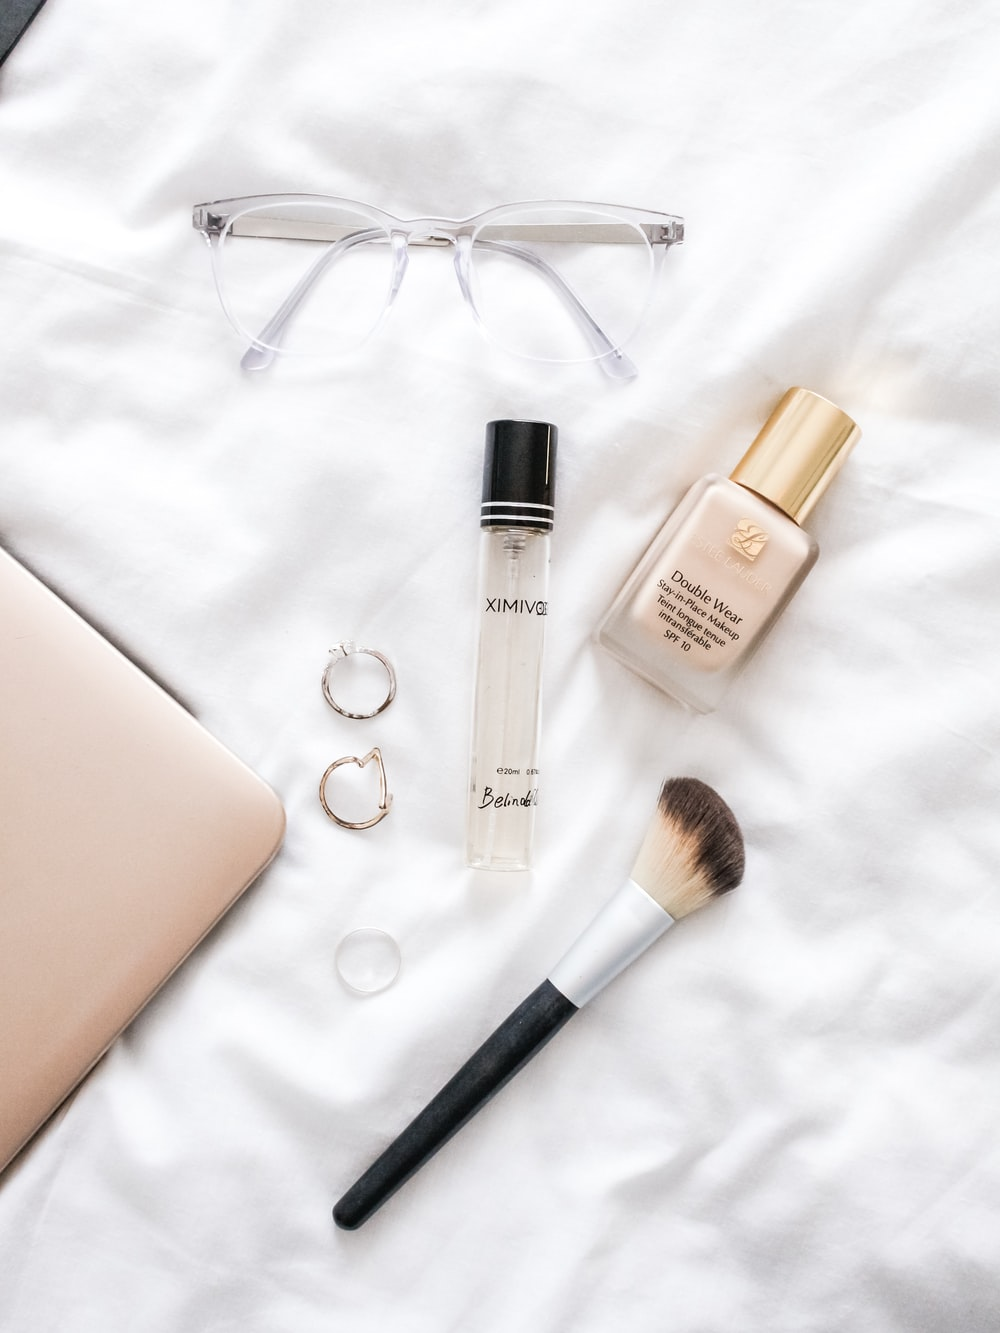 clear glass fragrance bottle and black makeup brush on white textile